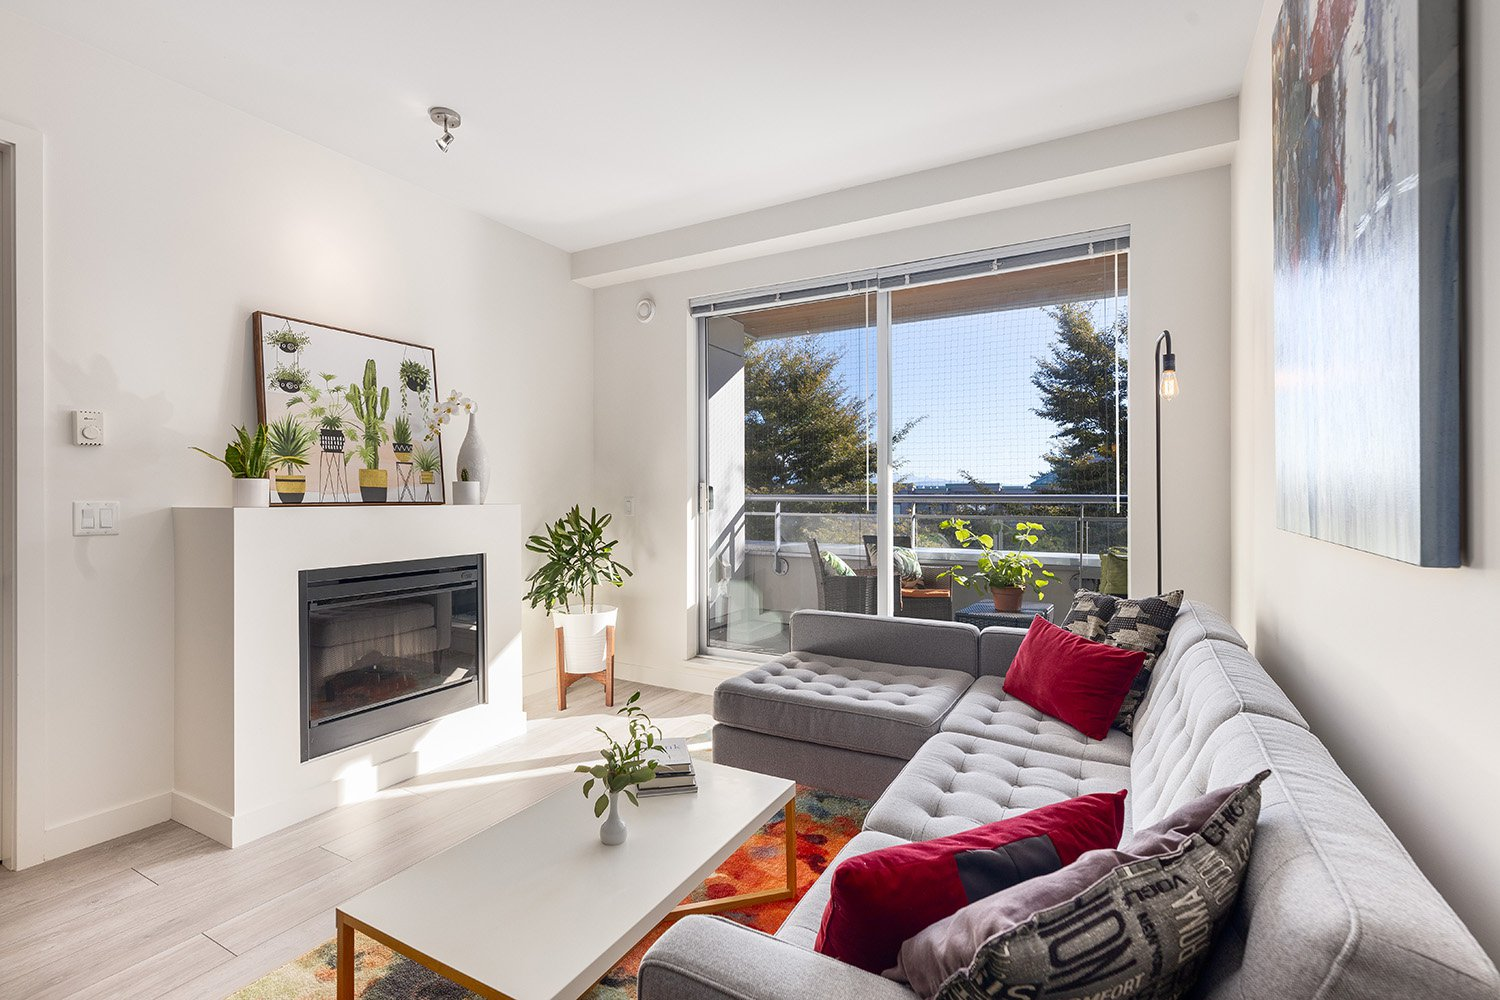 Main Photo: 312 3333 Main Street in Vancouver: Mount Pleasant VE Condo for sale (Vancouver East)  : MLS®# 2503298